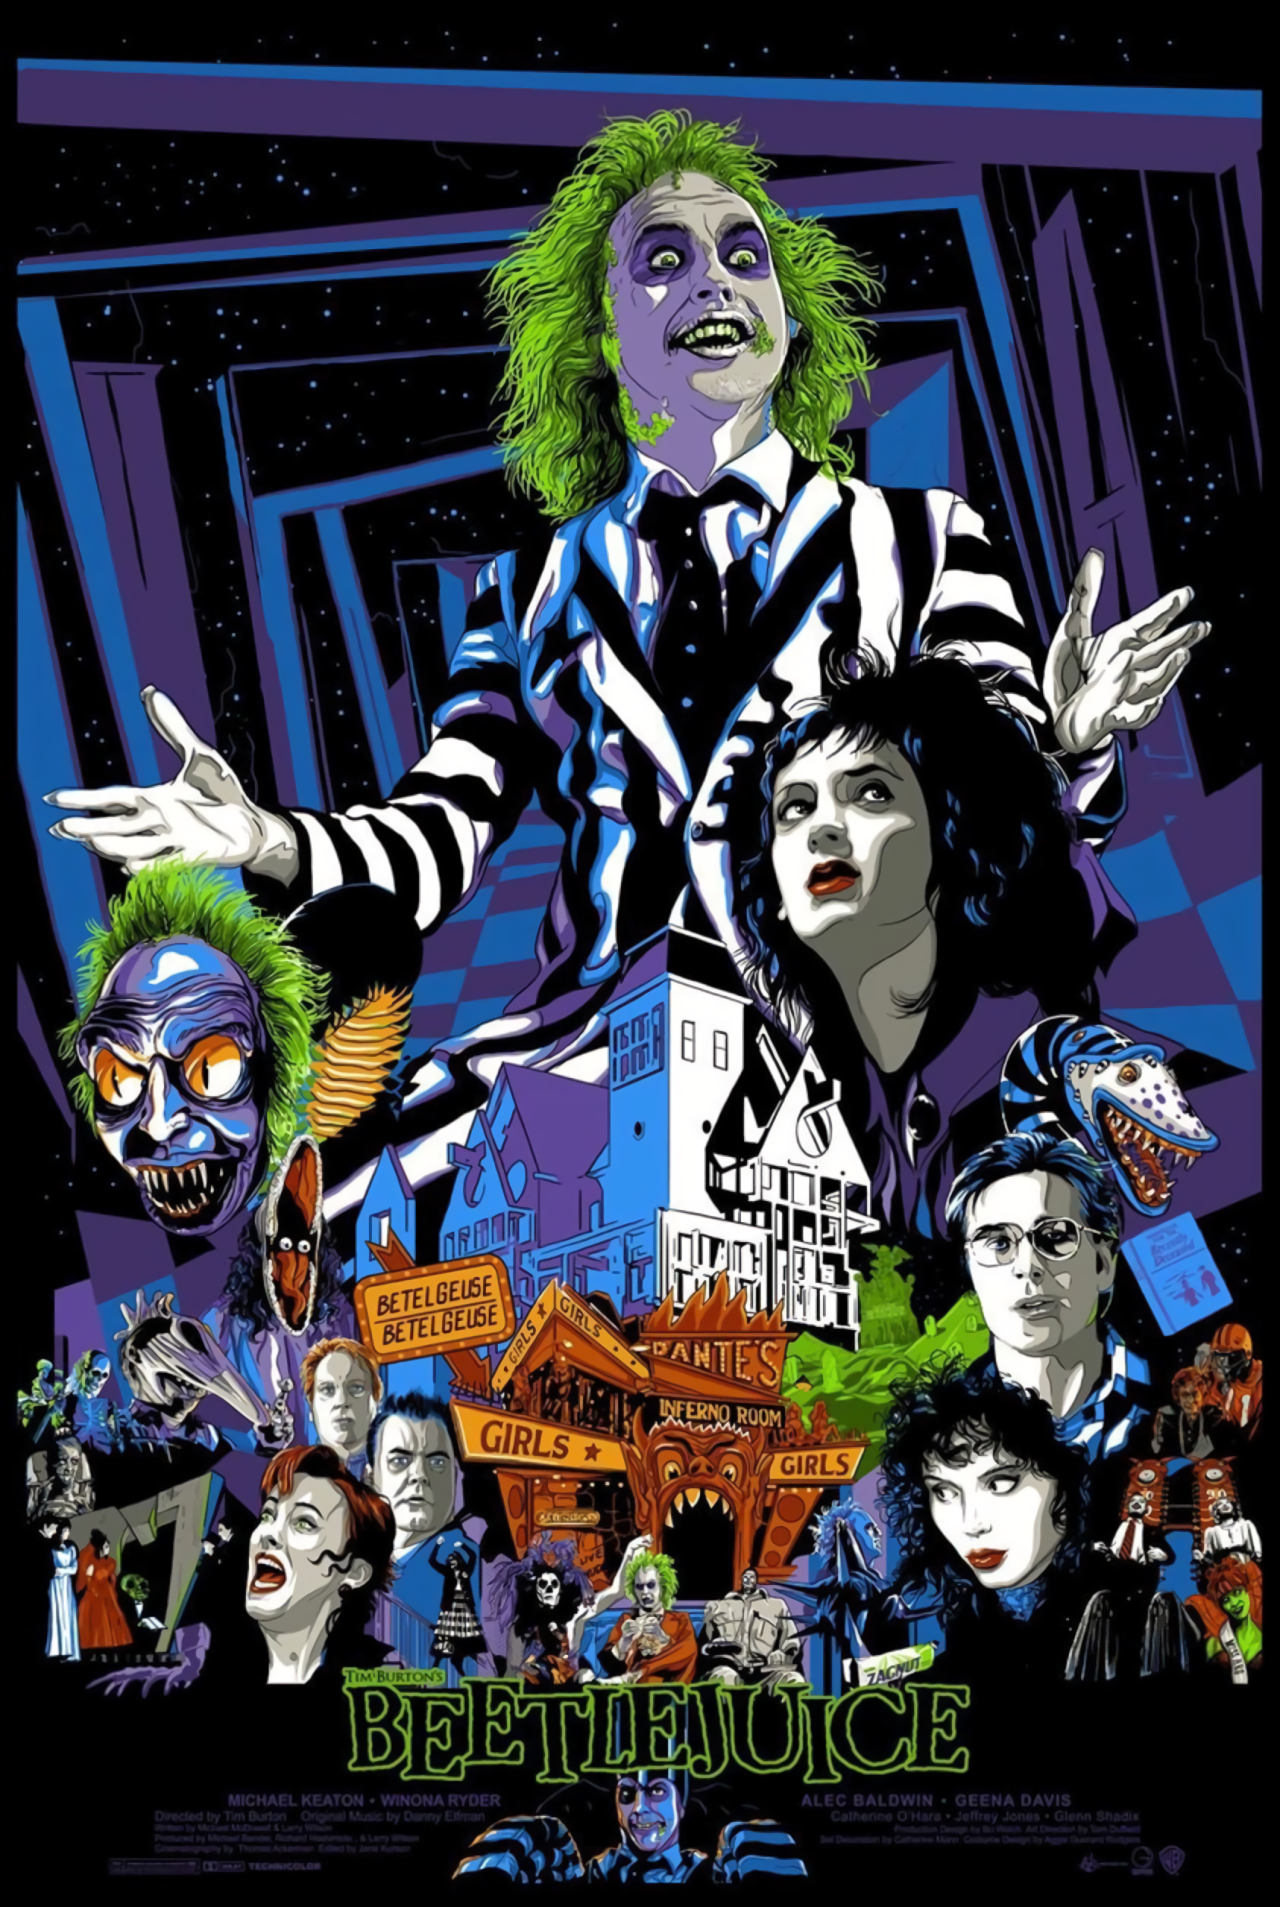 Beetlejuice (1988) HD Wallpaper From (With